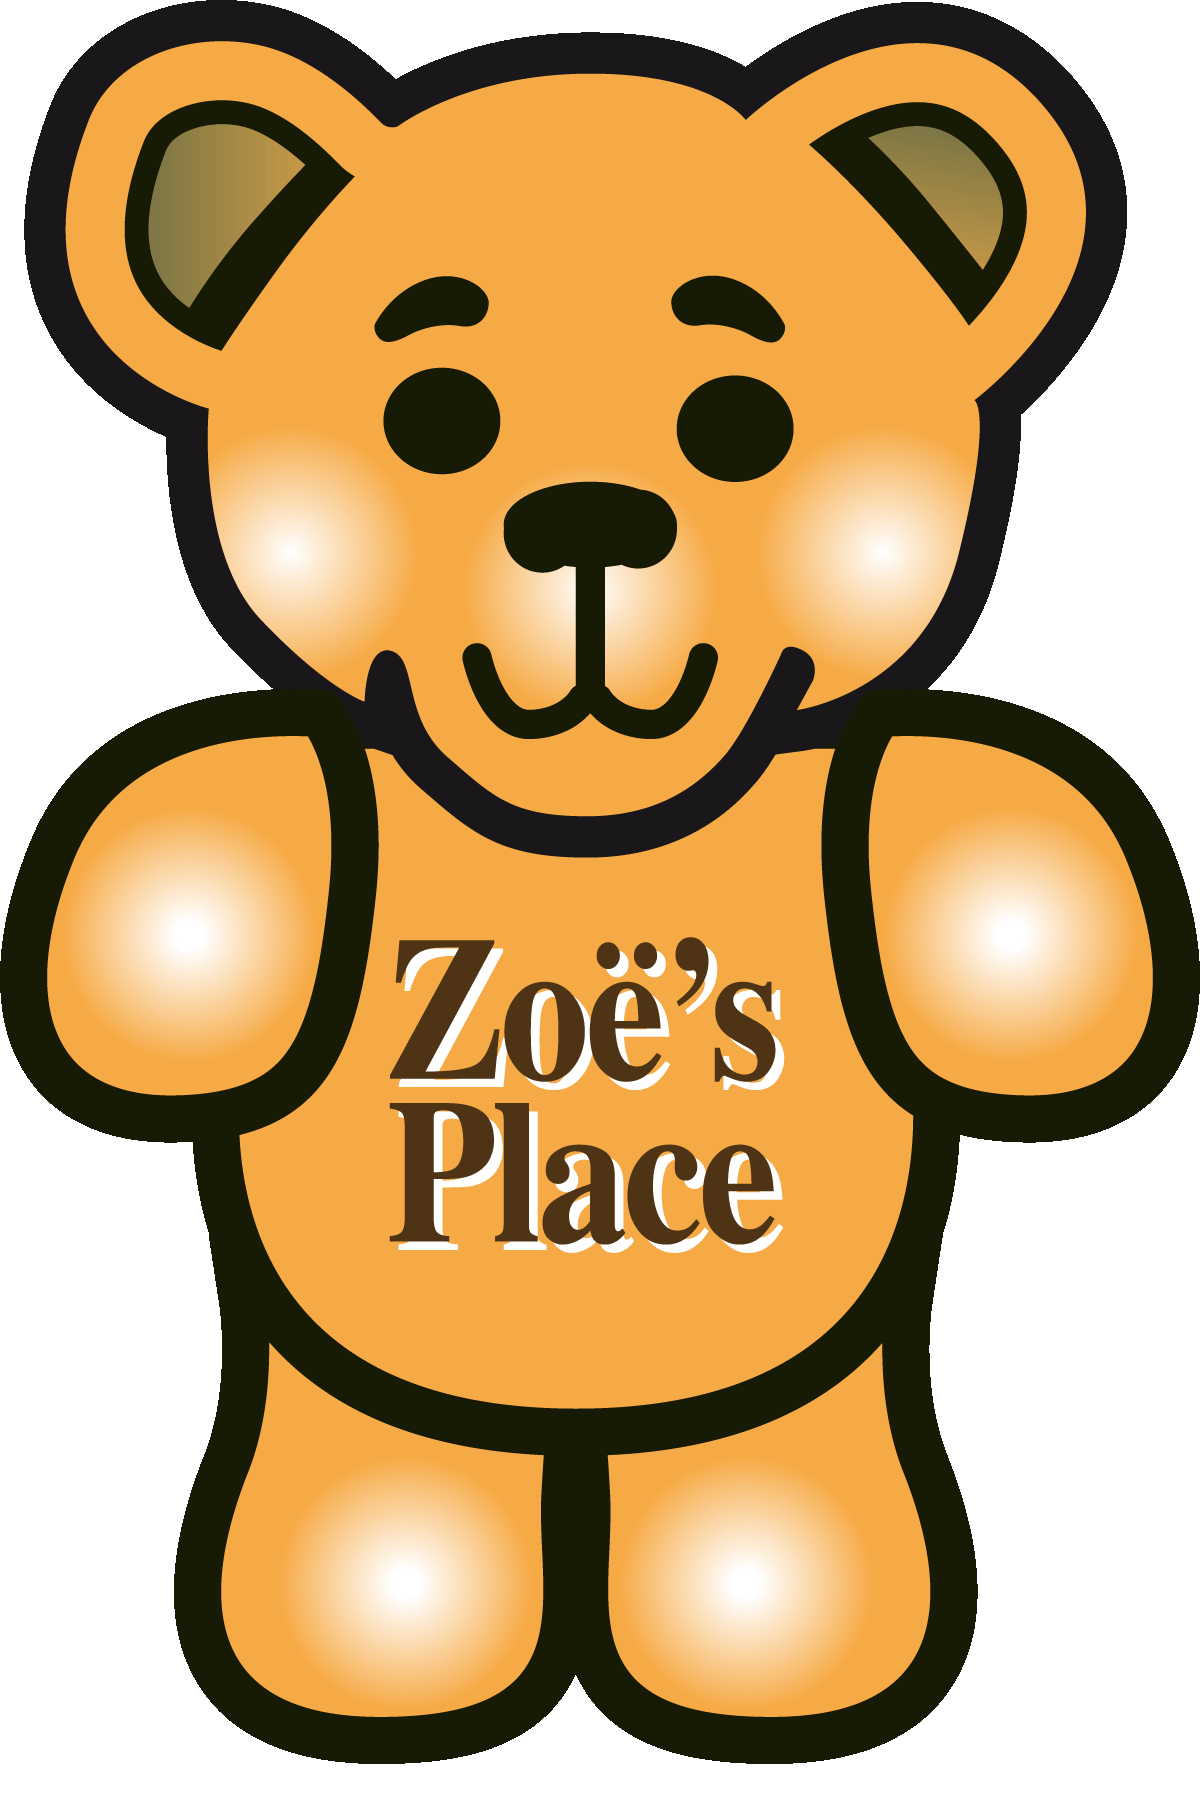 Selwyns Travel are supporting children's chairty Zoe's Place!